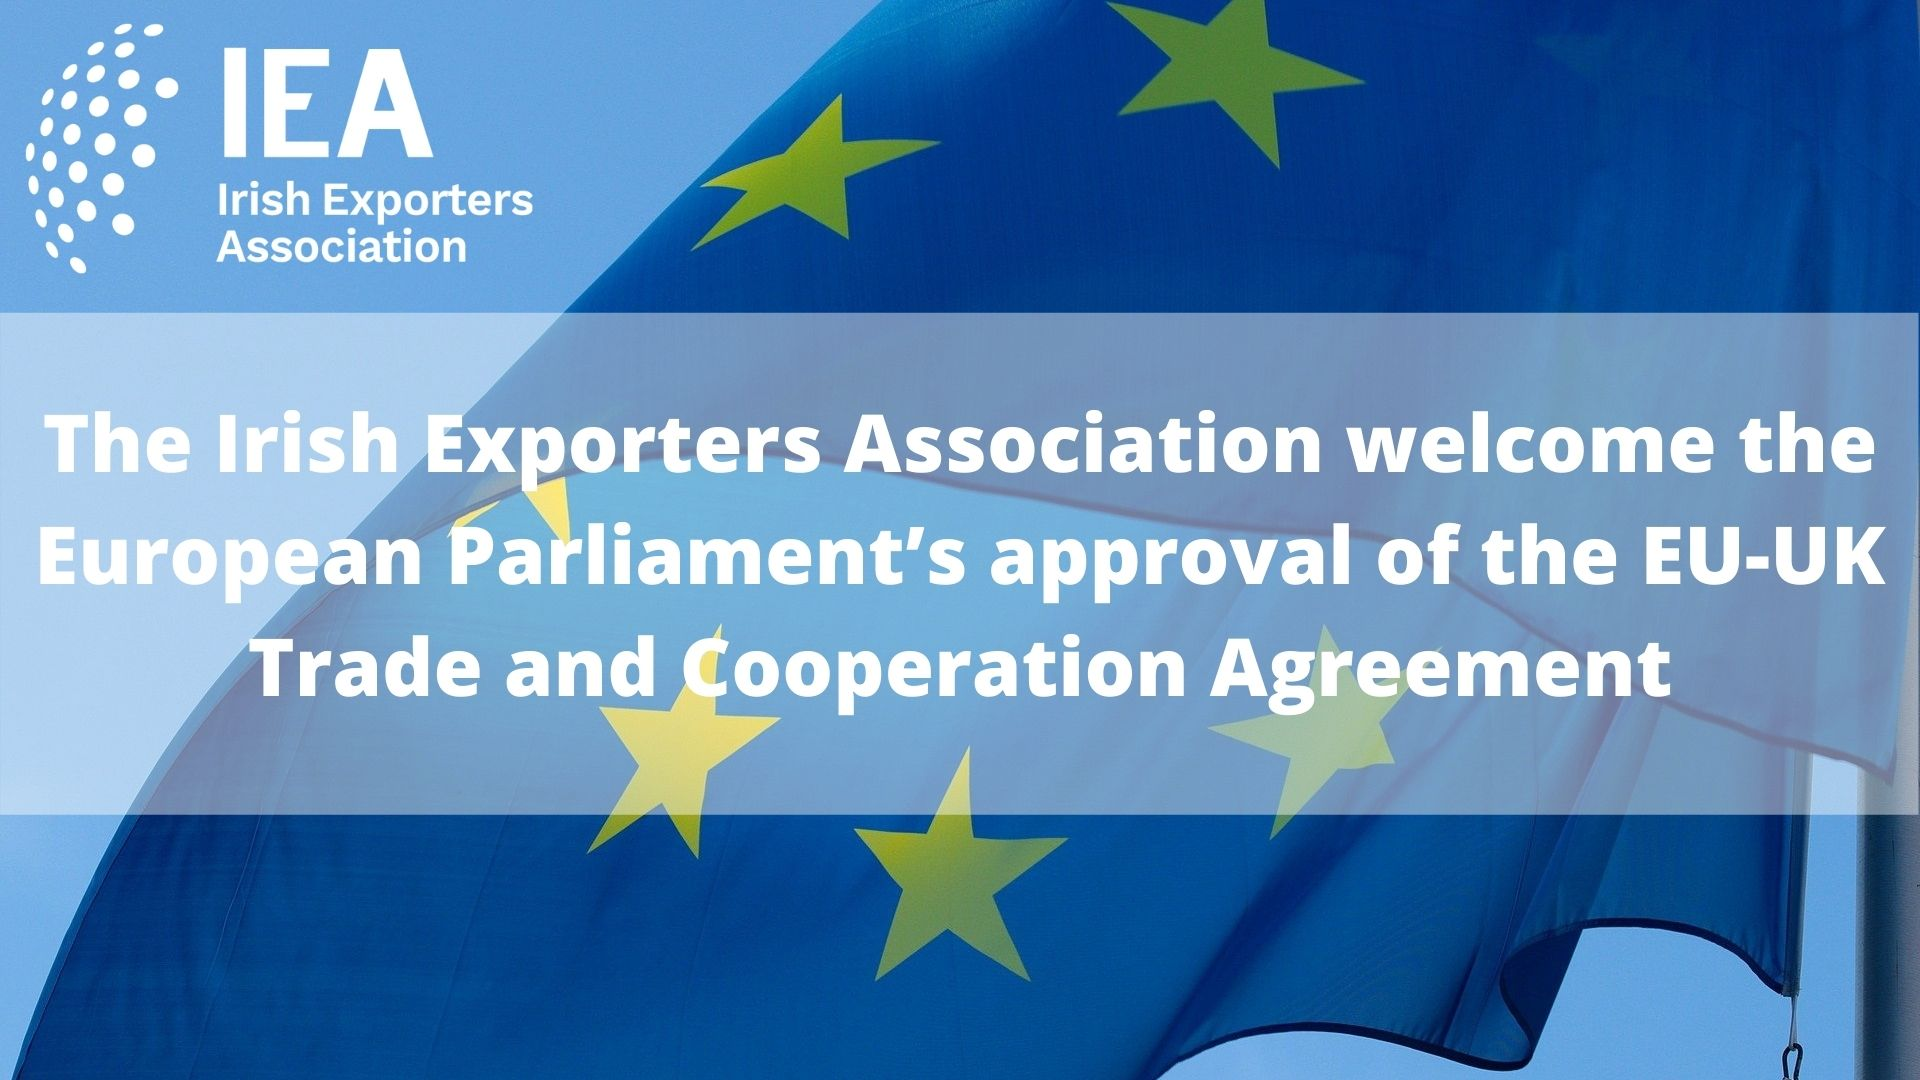 The Irish Exporters Association welcome the European Parliament's approval of the EU-UK Trade and Cooperation Agreement